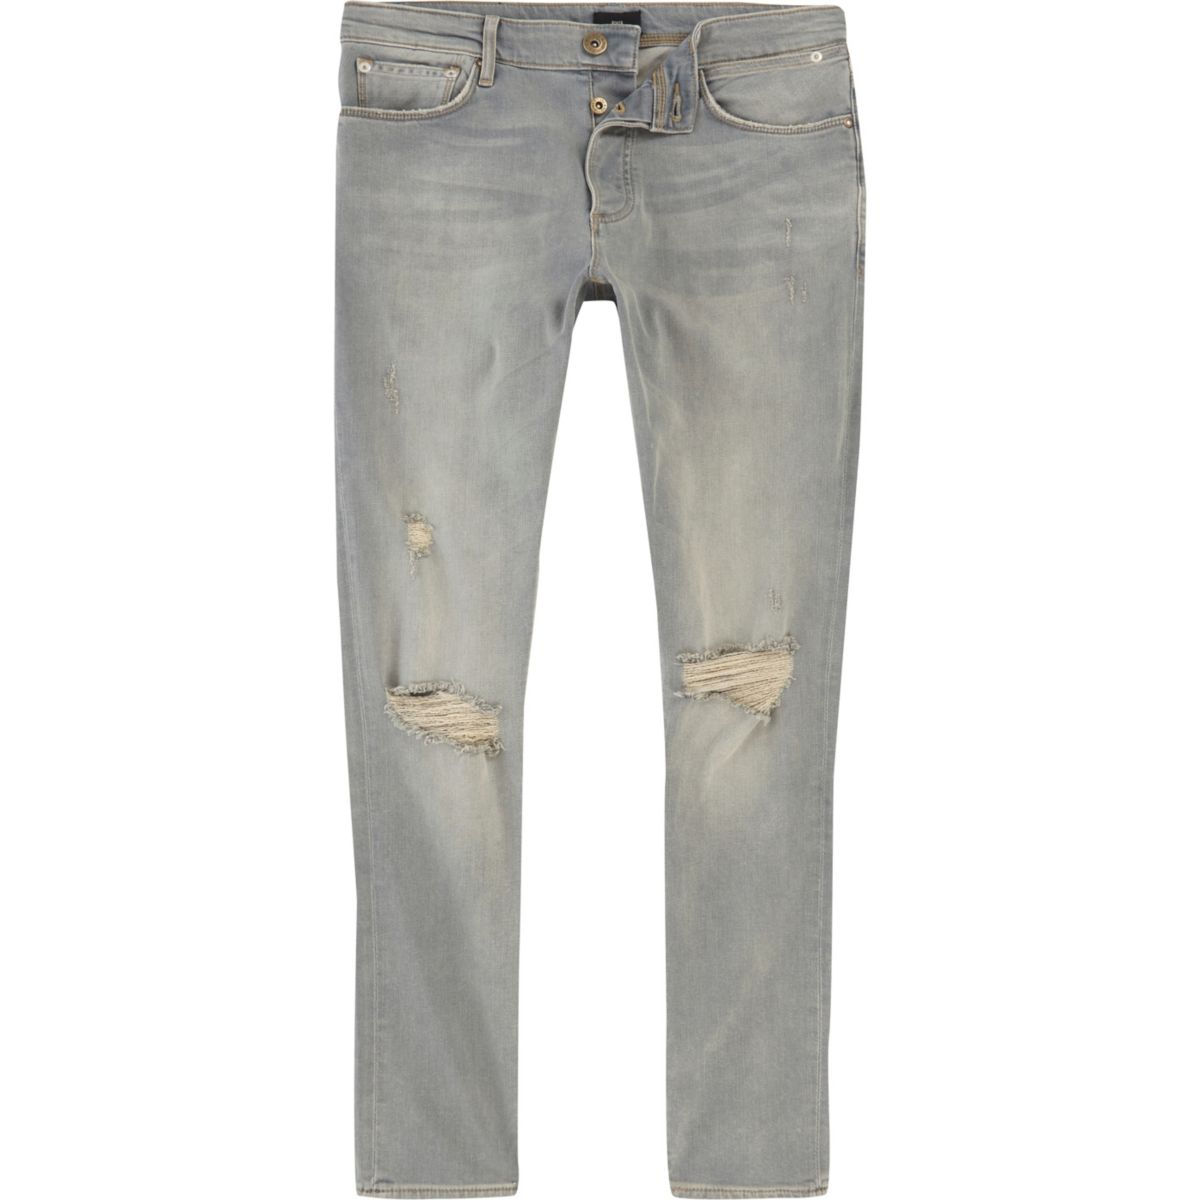 Washed light blue ripped Sid skinny jeans